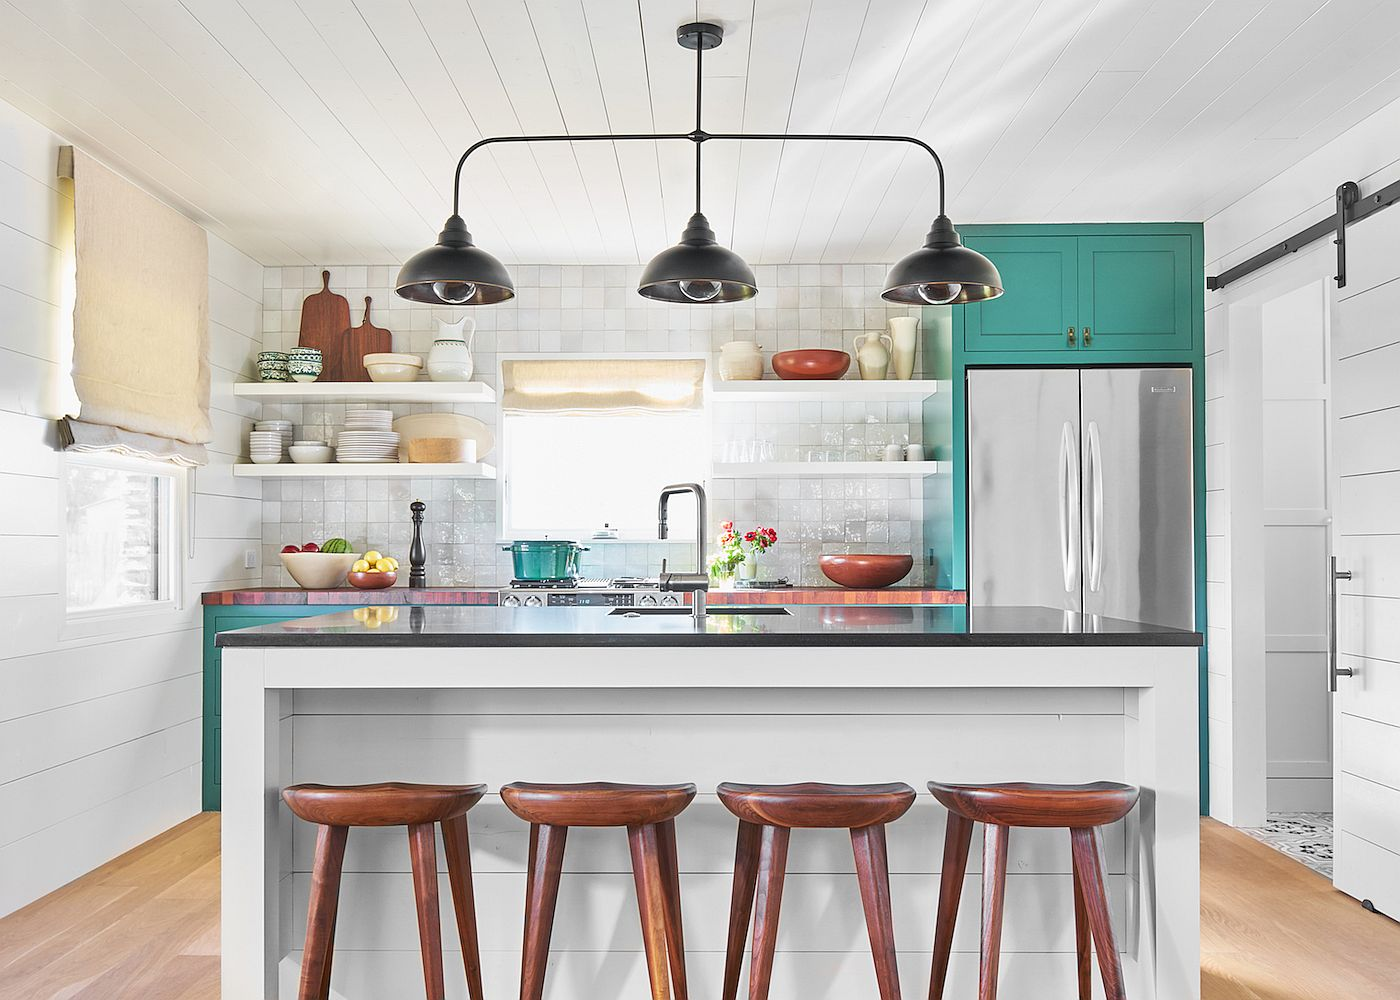 Relaxing ranch style kitchen in white with a splash of teal that brings brightness